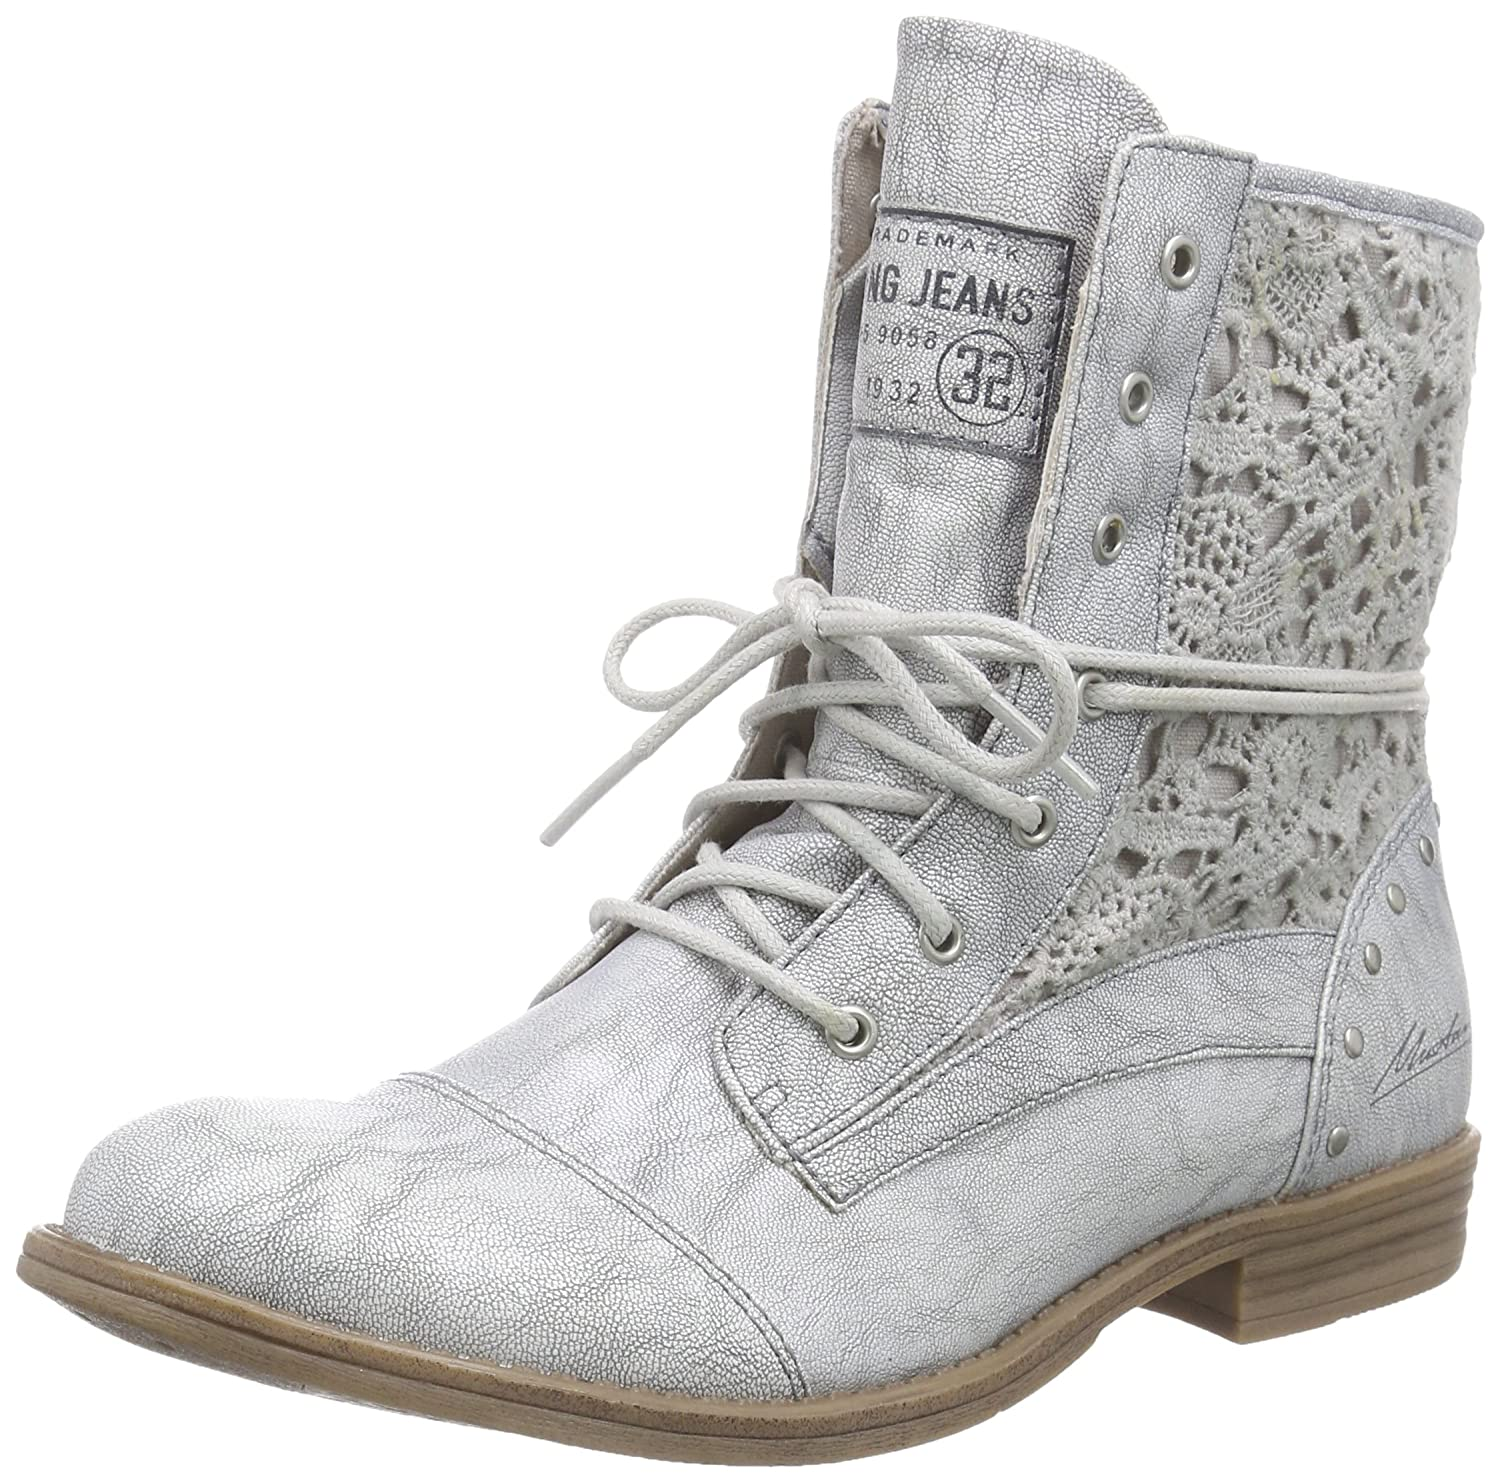 1157-527, Womens Cold Lined Classic Boots Short Length Mustang